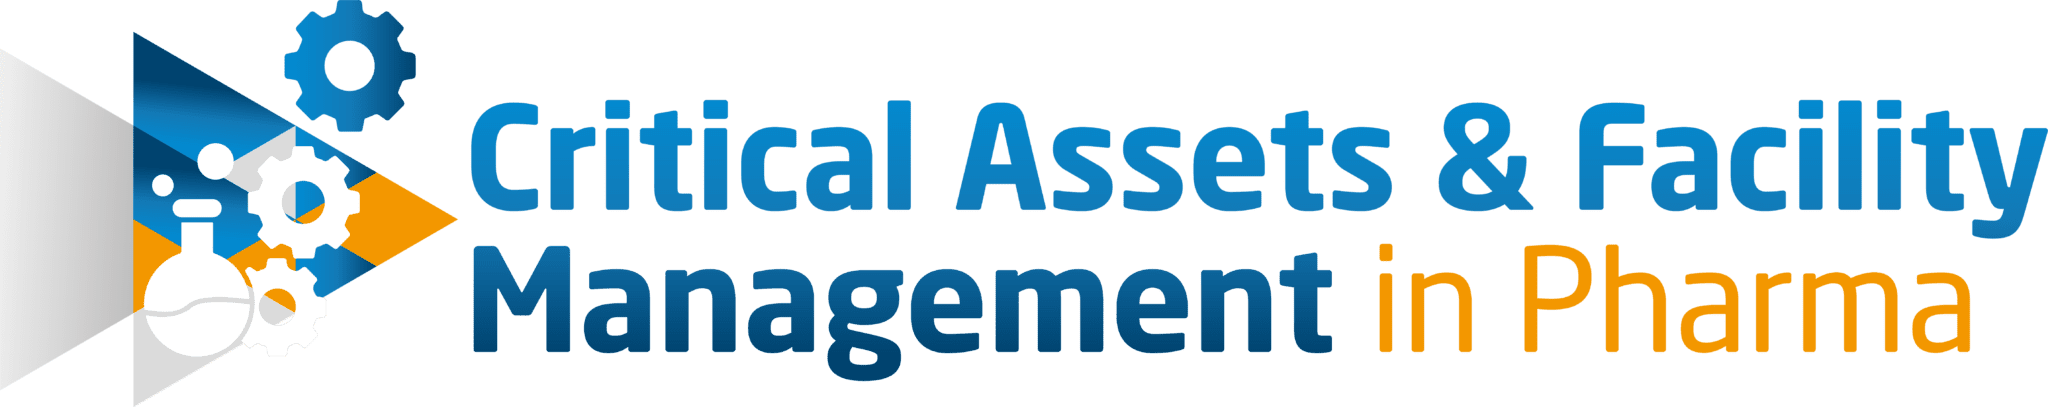 HW191010 Critical Assets & Facility Management in Pharma logo FINAL